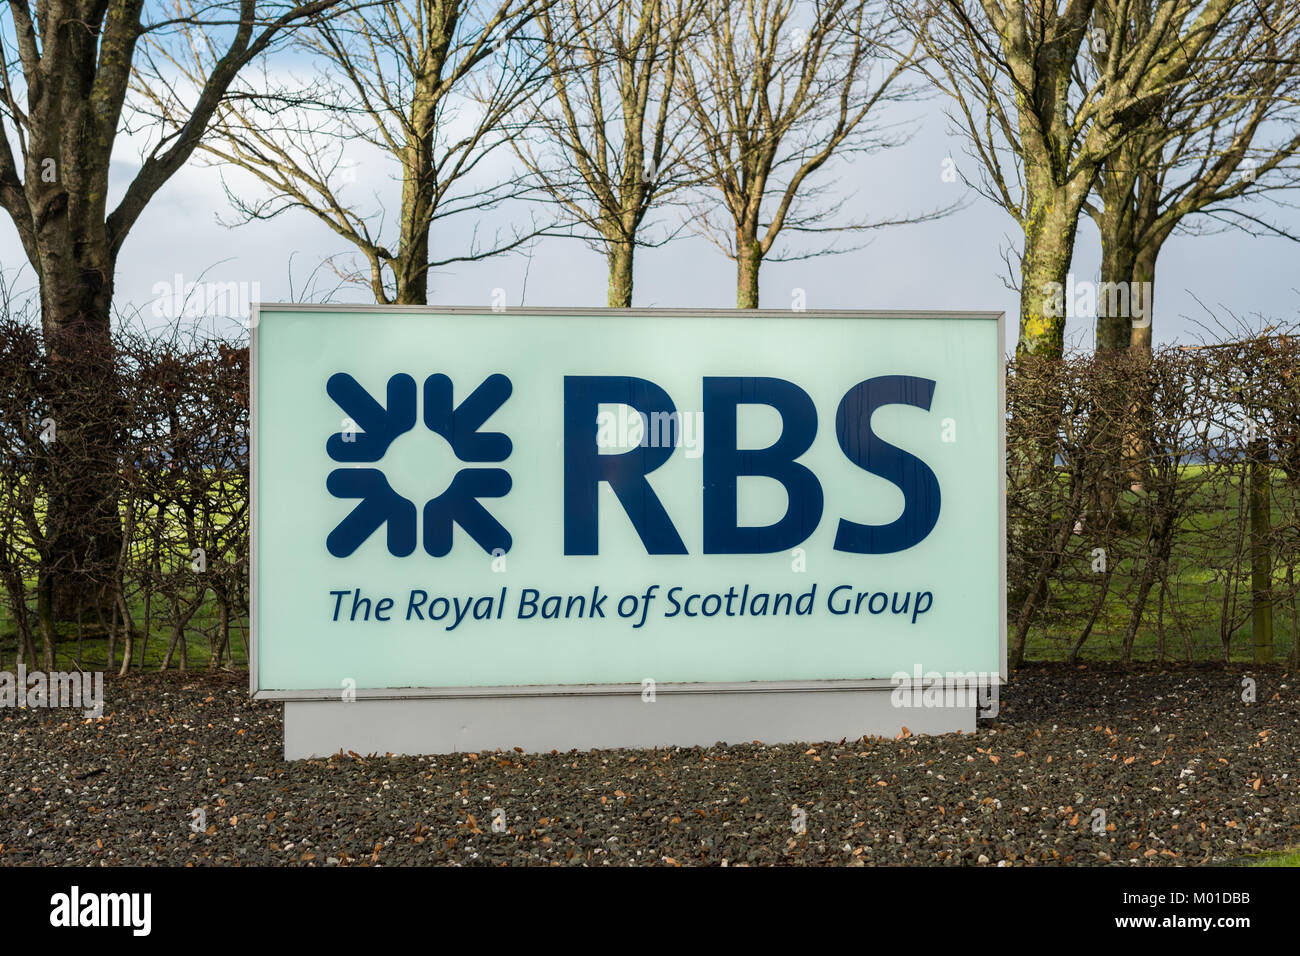 RBS Royal Bank of Scotland sign outside the Mortgage Centre in Greenock, Inverclyde, Scotland, UK - Stock Image